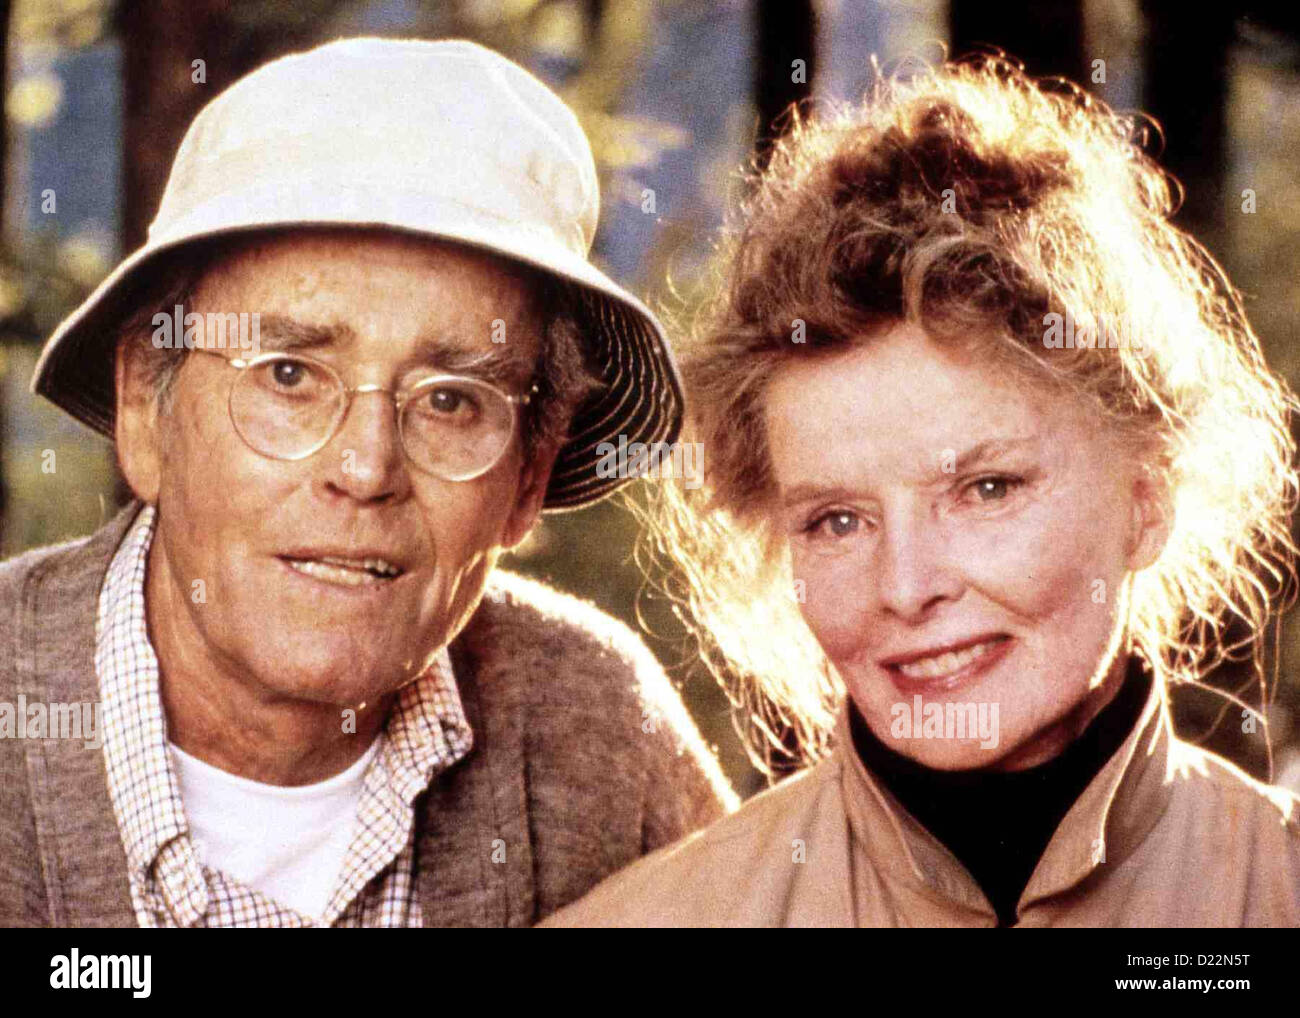 On Golden Pond Quotes On Golden Pond Movie Stock Photos & On Golden Pond Movie Stock